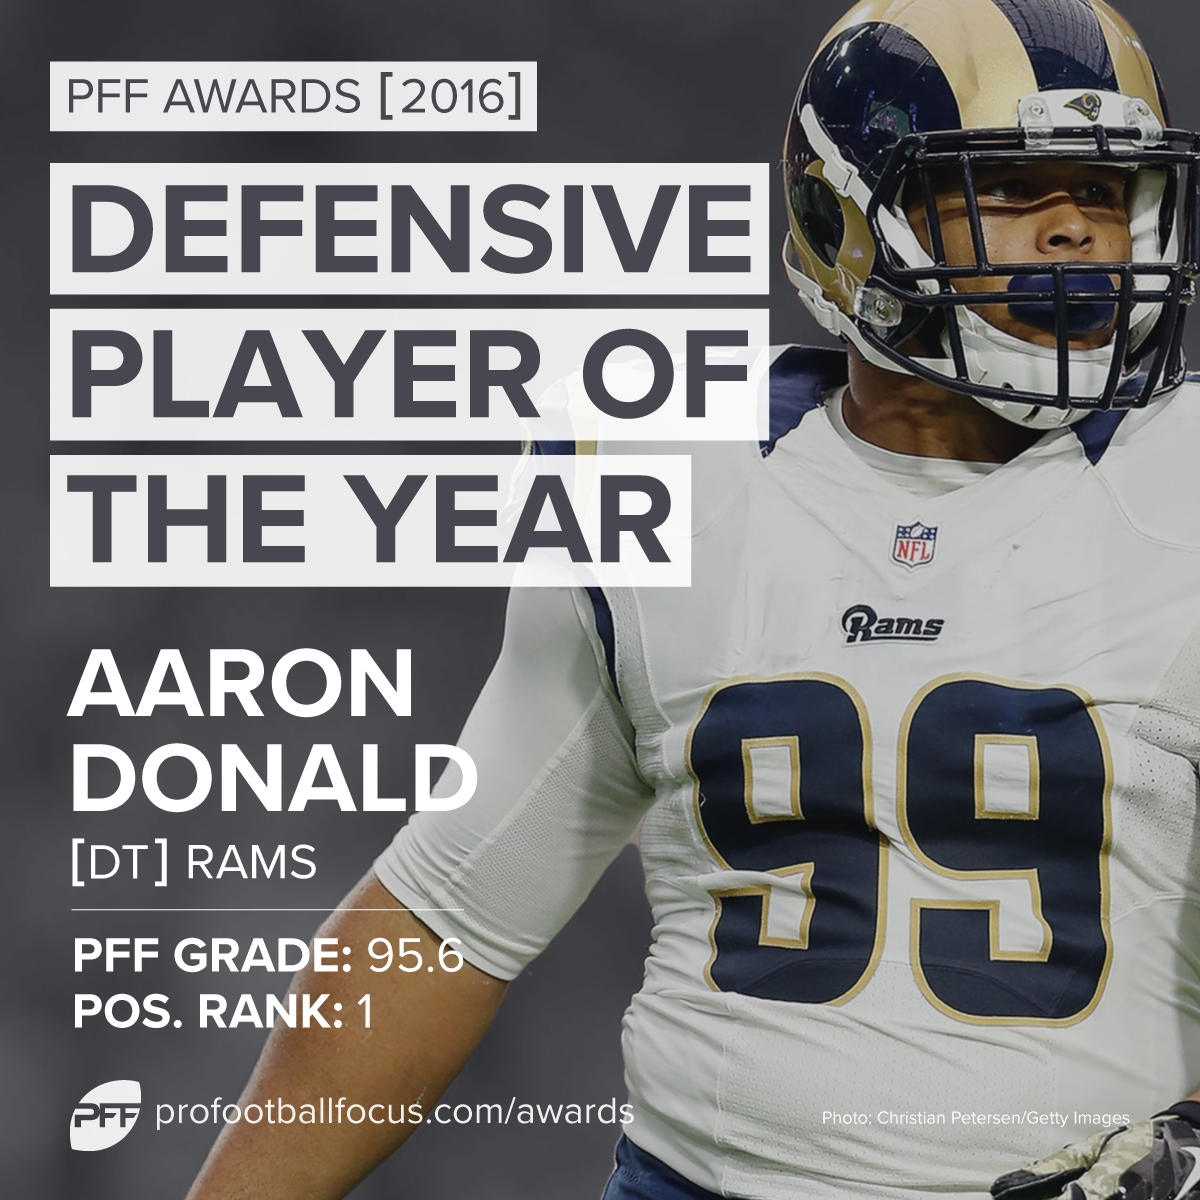 donald_defensive-player-of-the-year.png